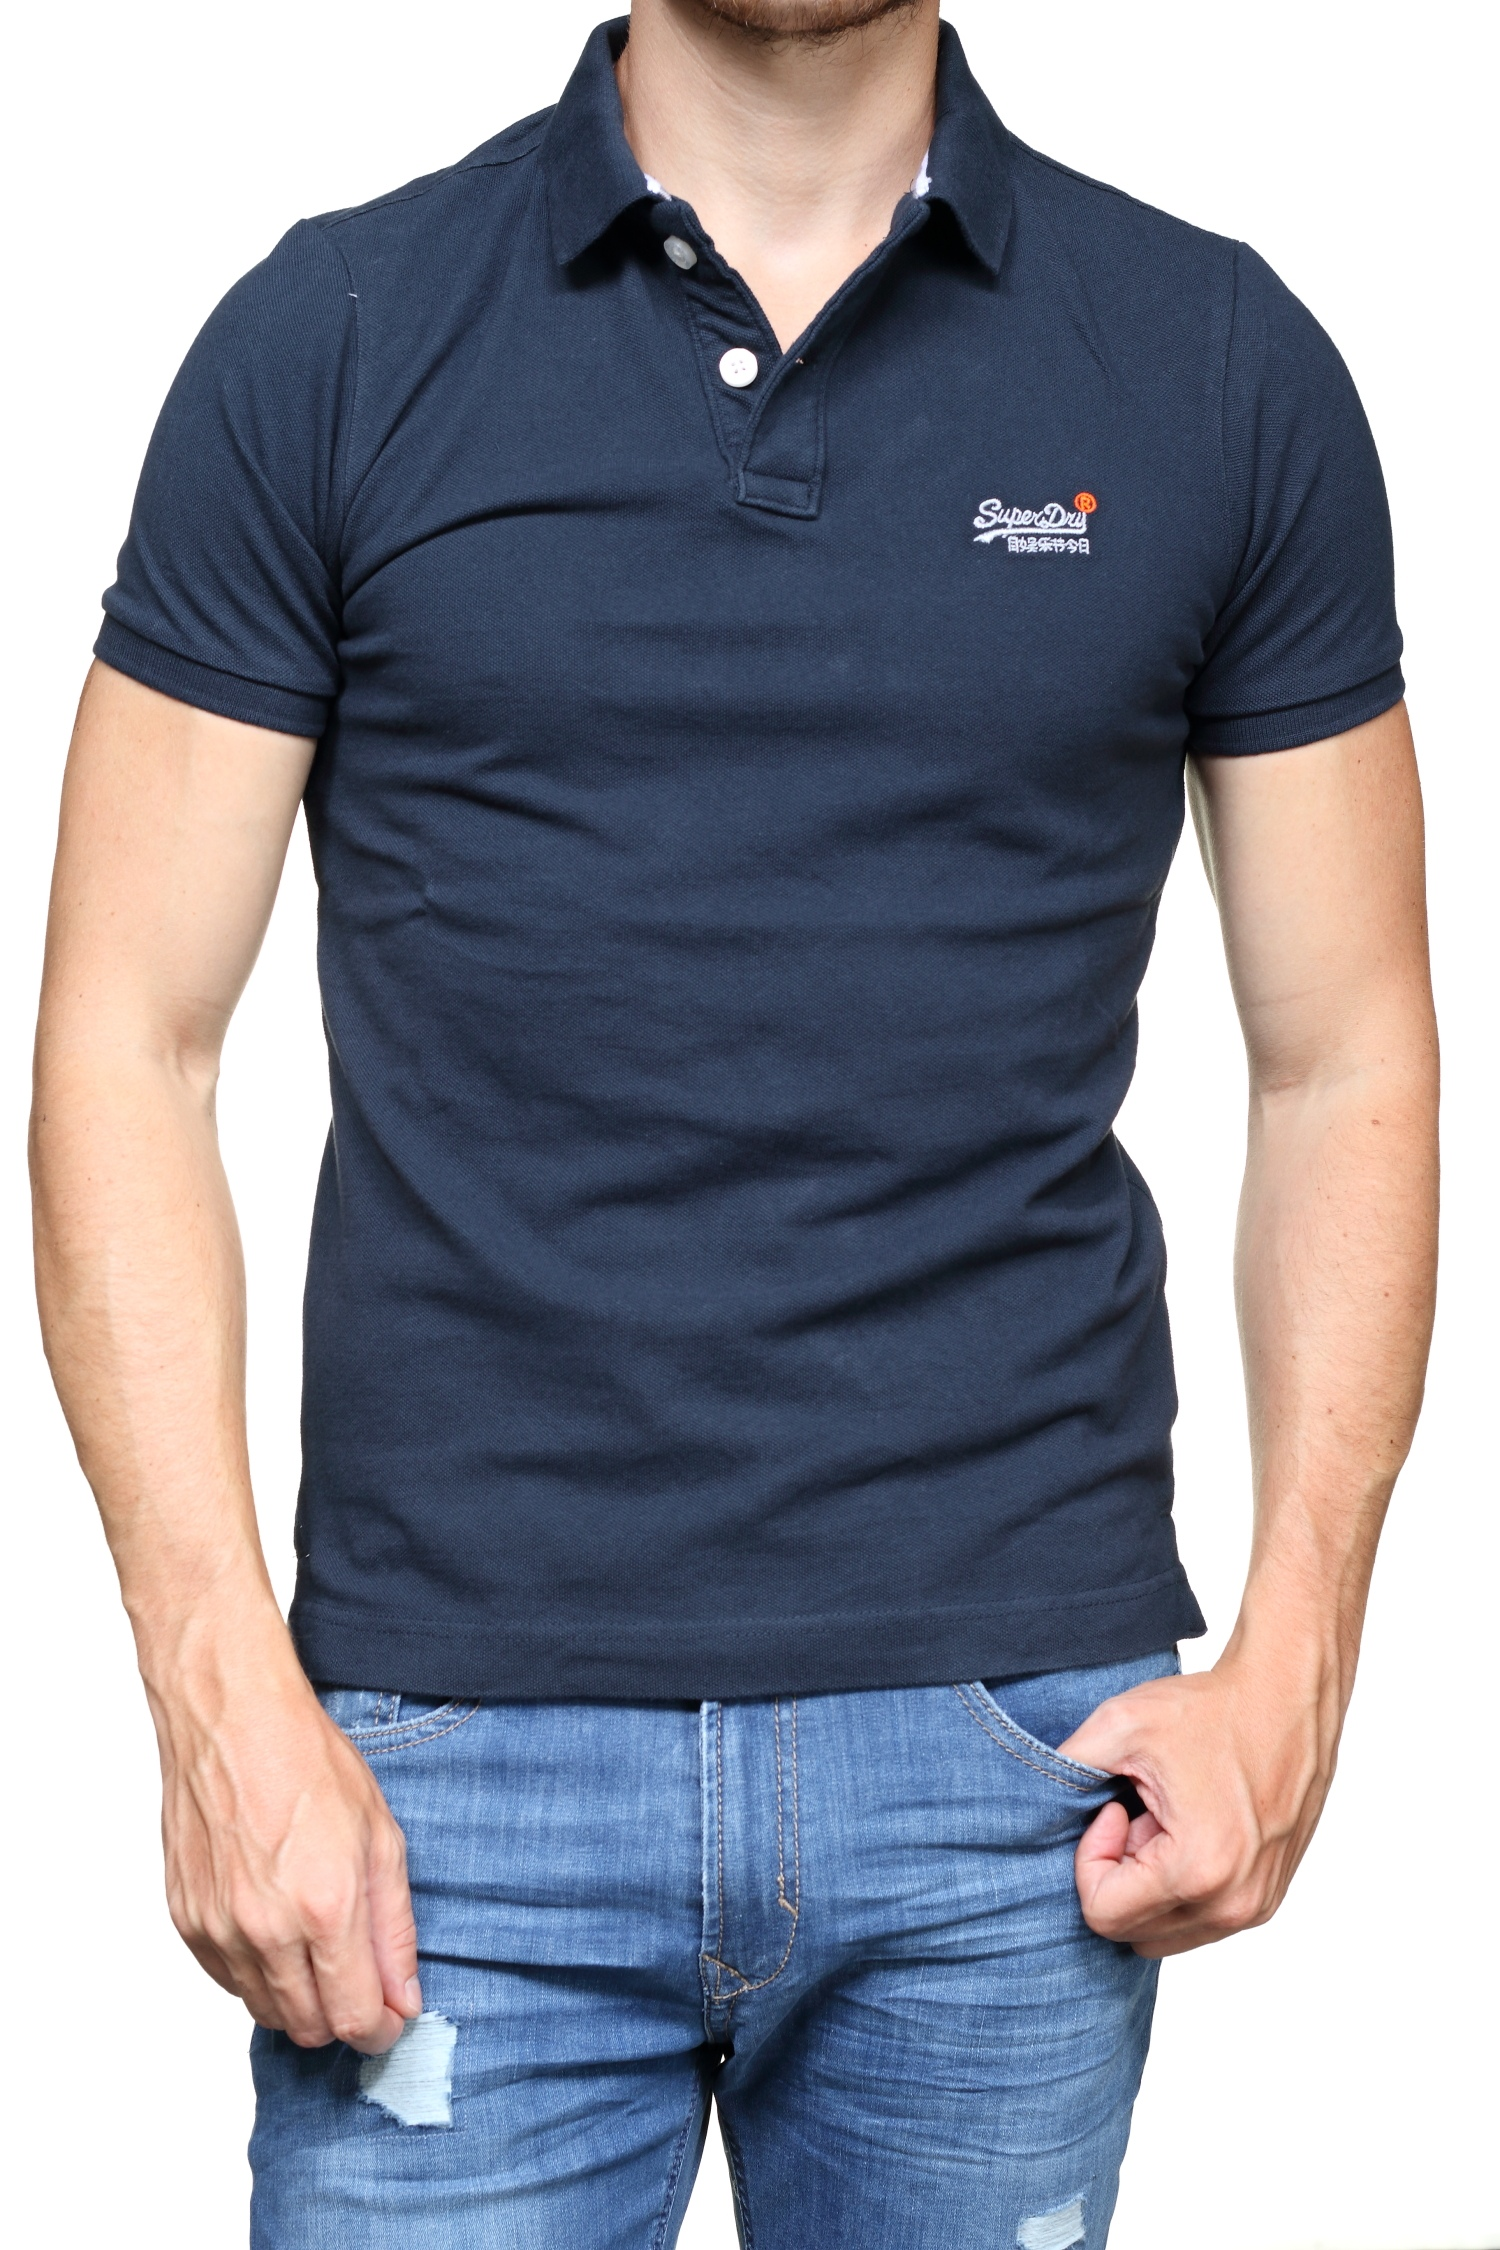 http://www.leadermode.com/152739/superdry-classic-s-s-pique-m11005n-98t-eclipse-navy.jpg